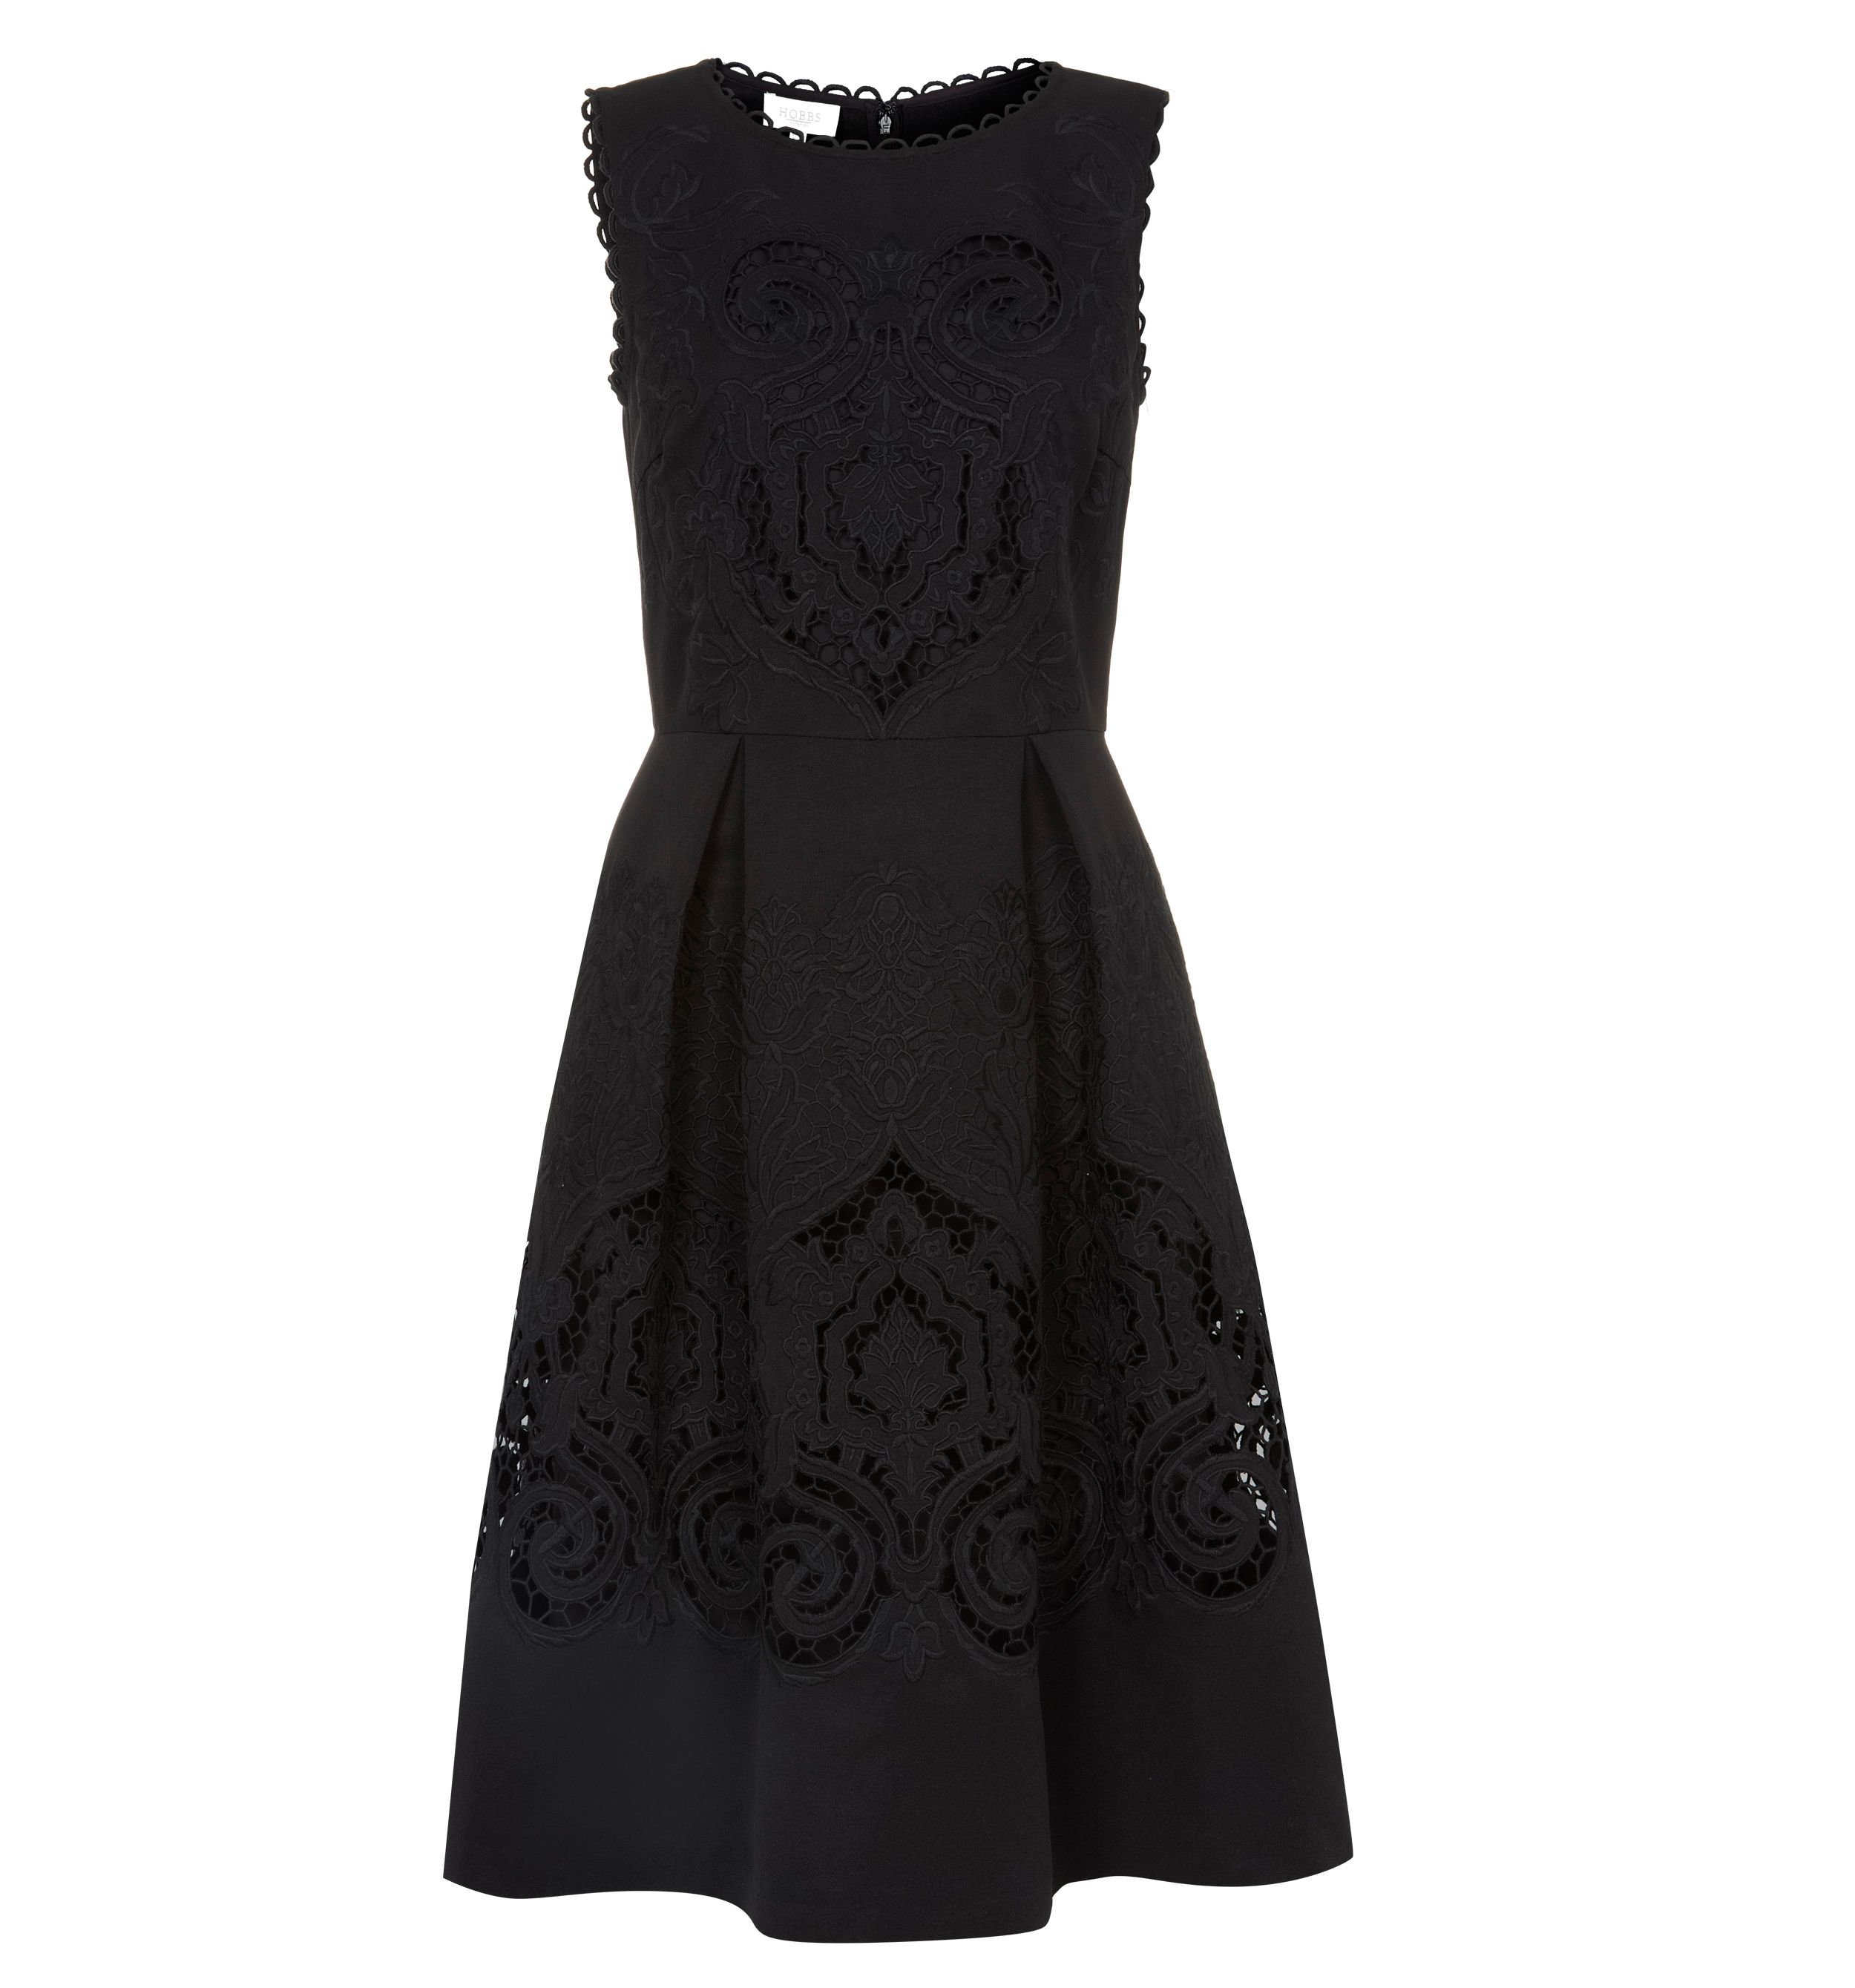 Maida vale dress